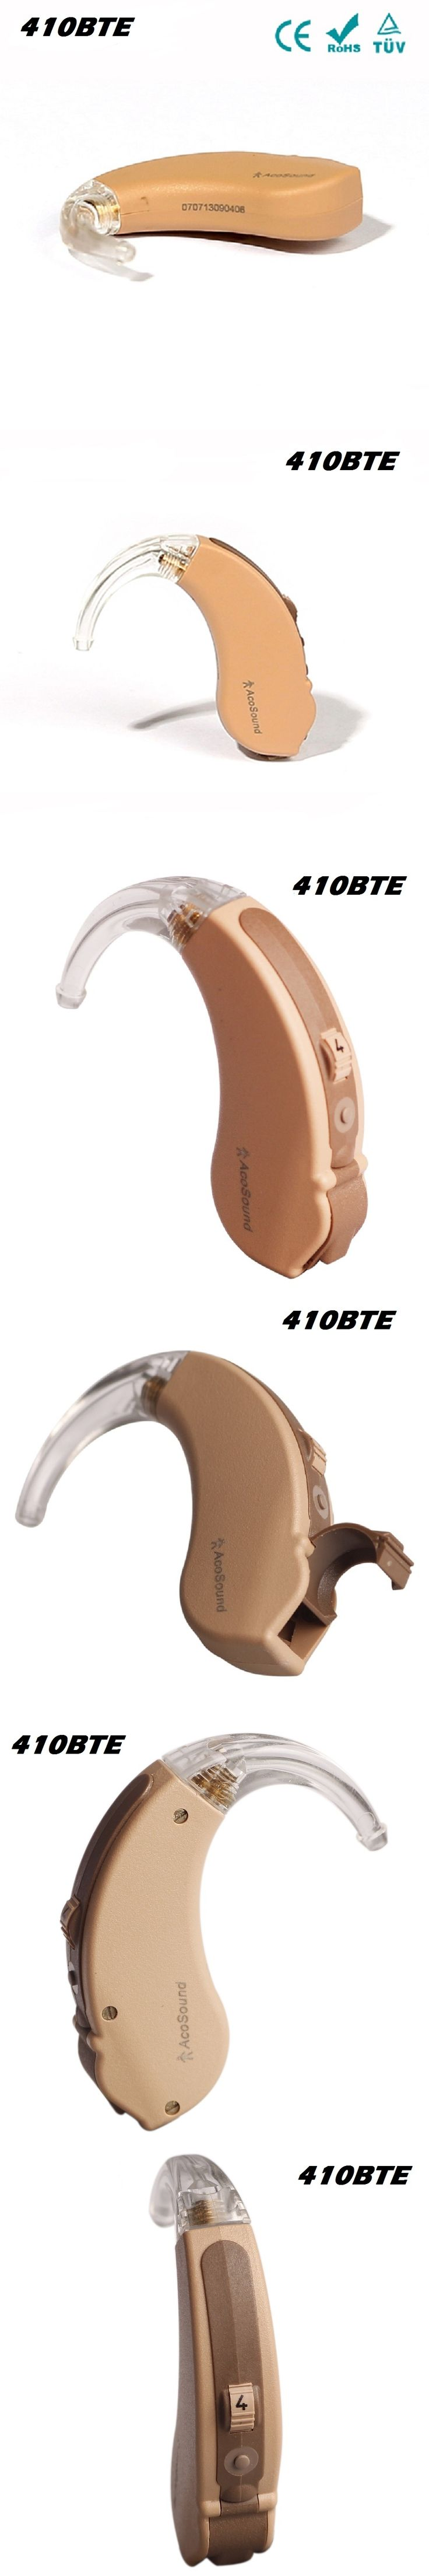 Invaxe 410 BTE Sound Amplifier Hearing Aid Device Programmable Mini Hearing Aids BTE In Ear Hearing Amplifier